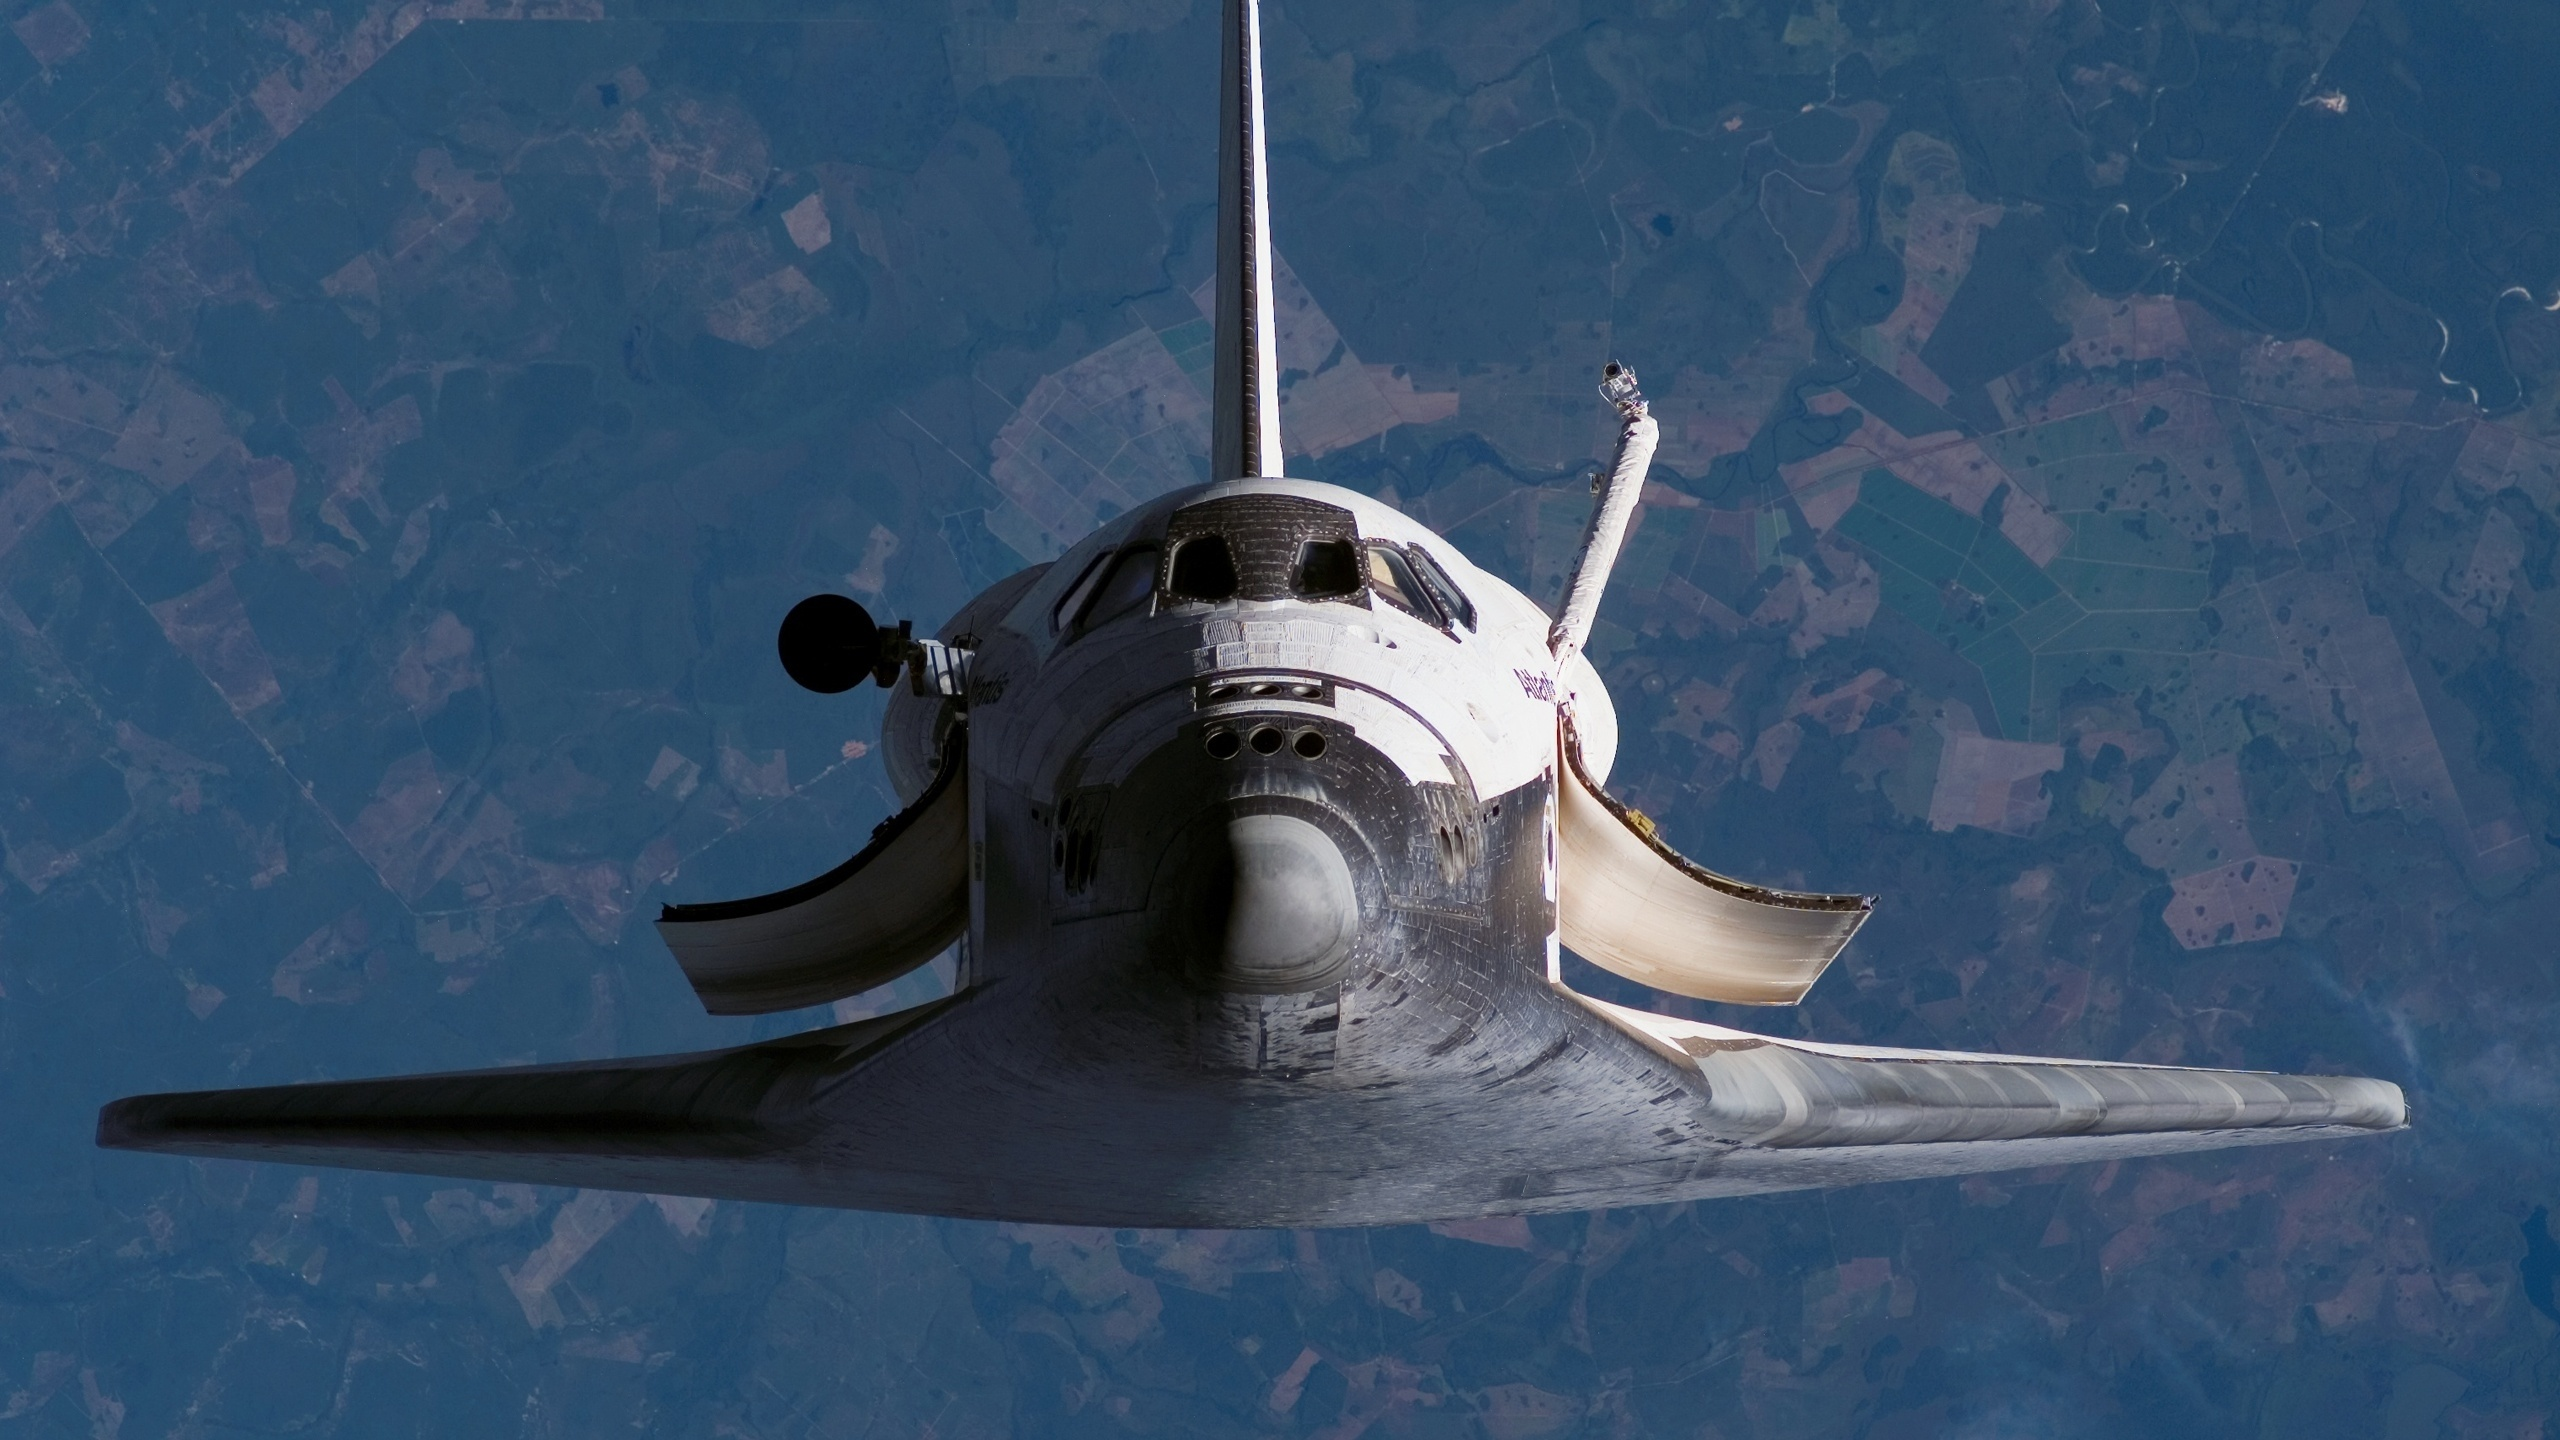 hd space shuttle in space - photo #1